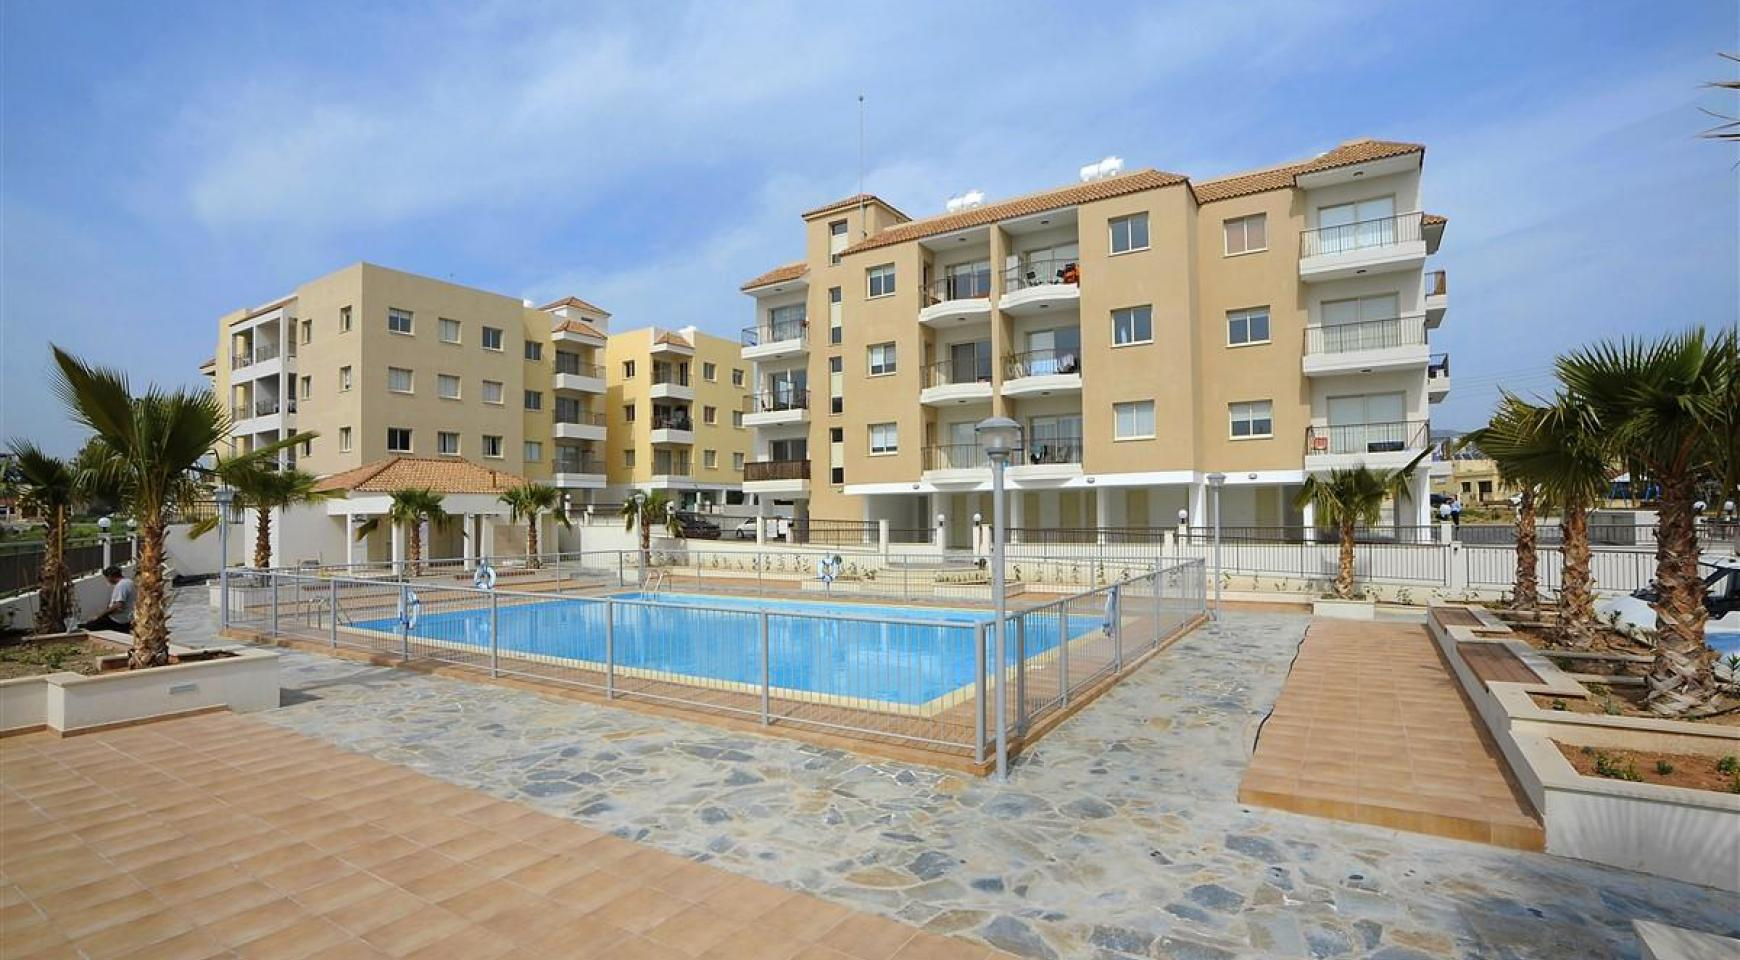 2 Bedroom Apartment in a Complex with the Swimming Pool - 4